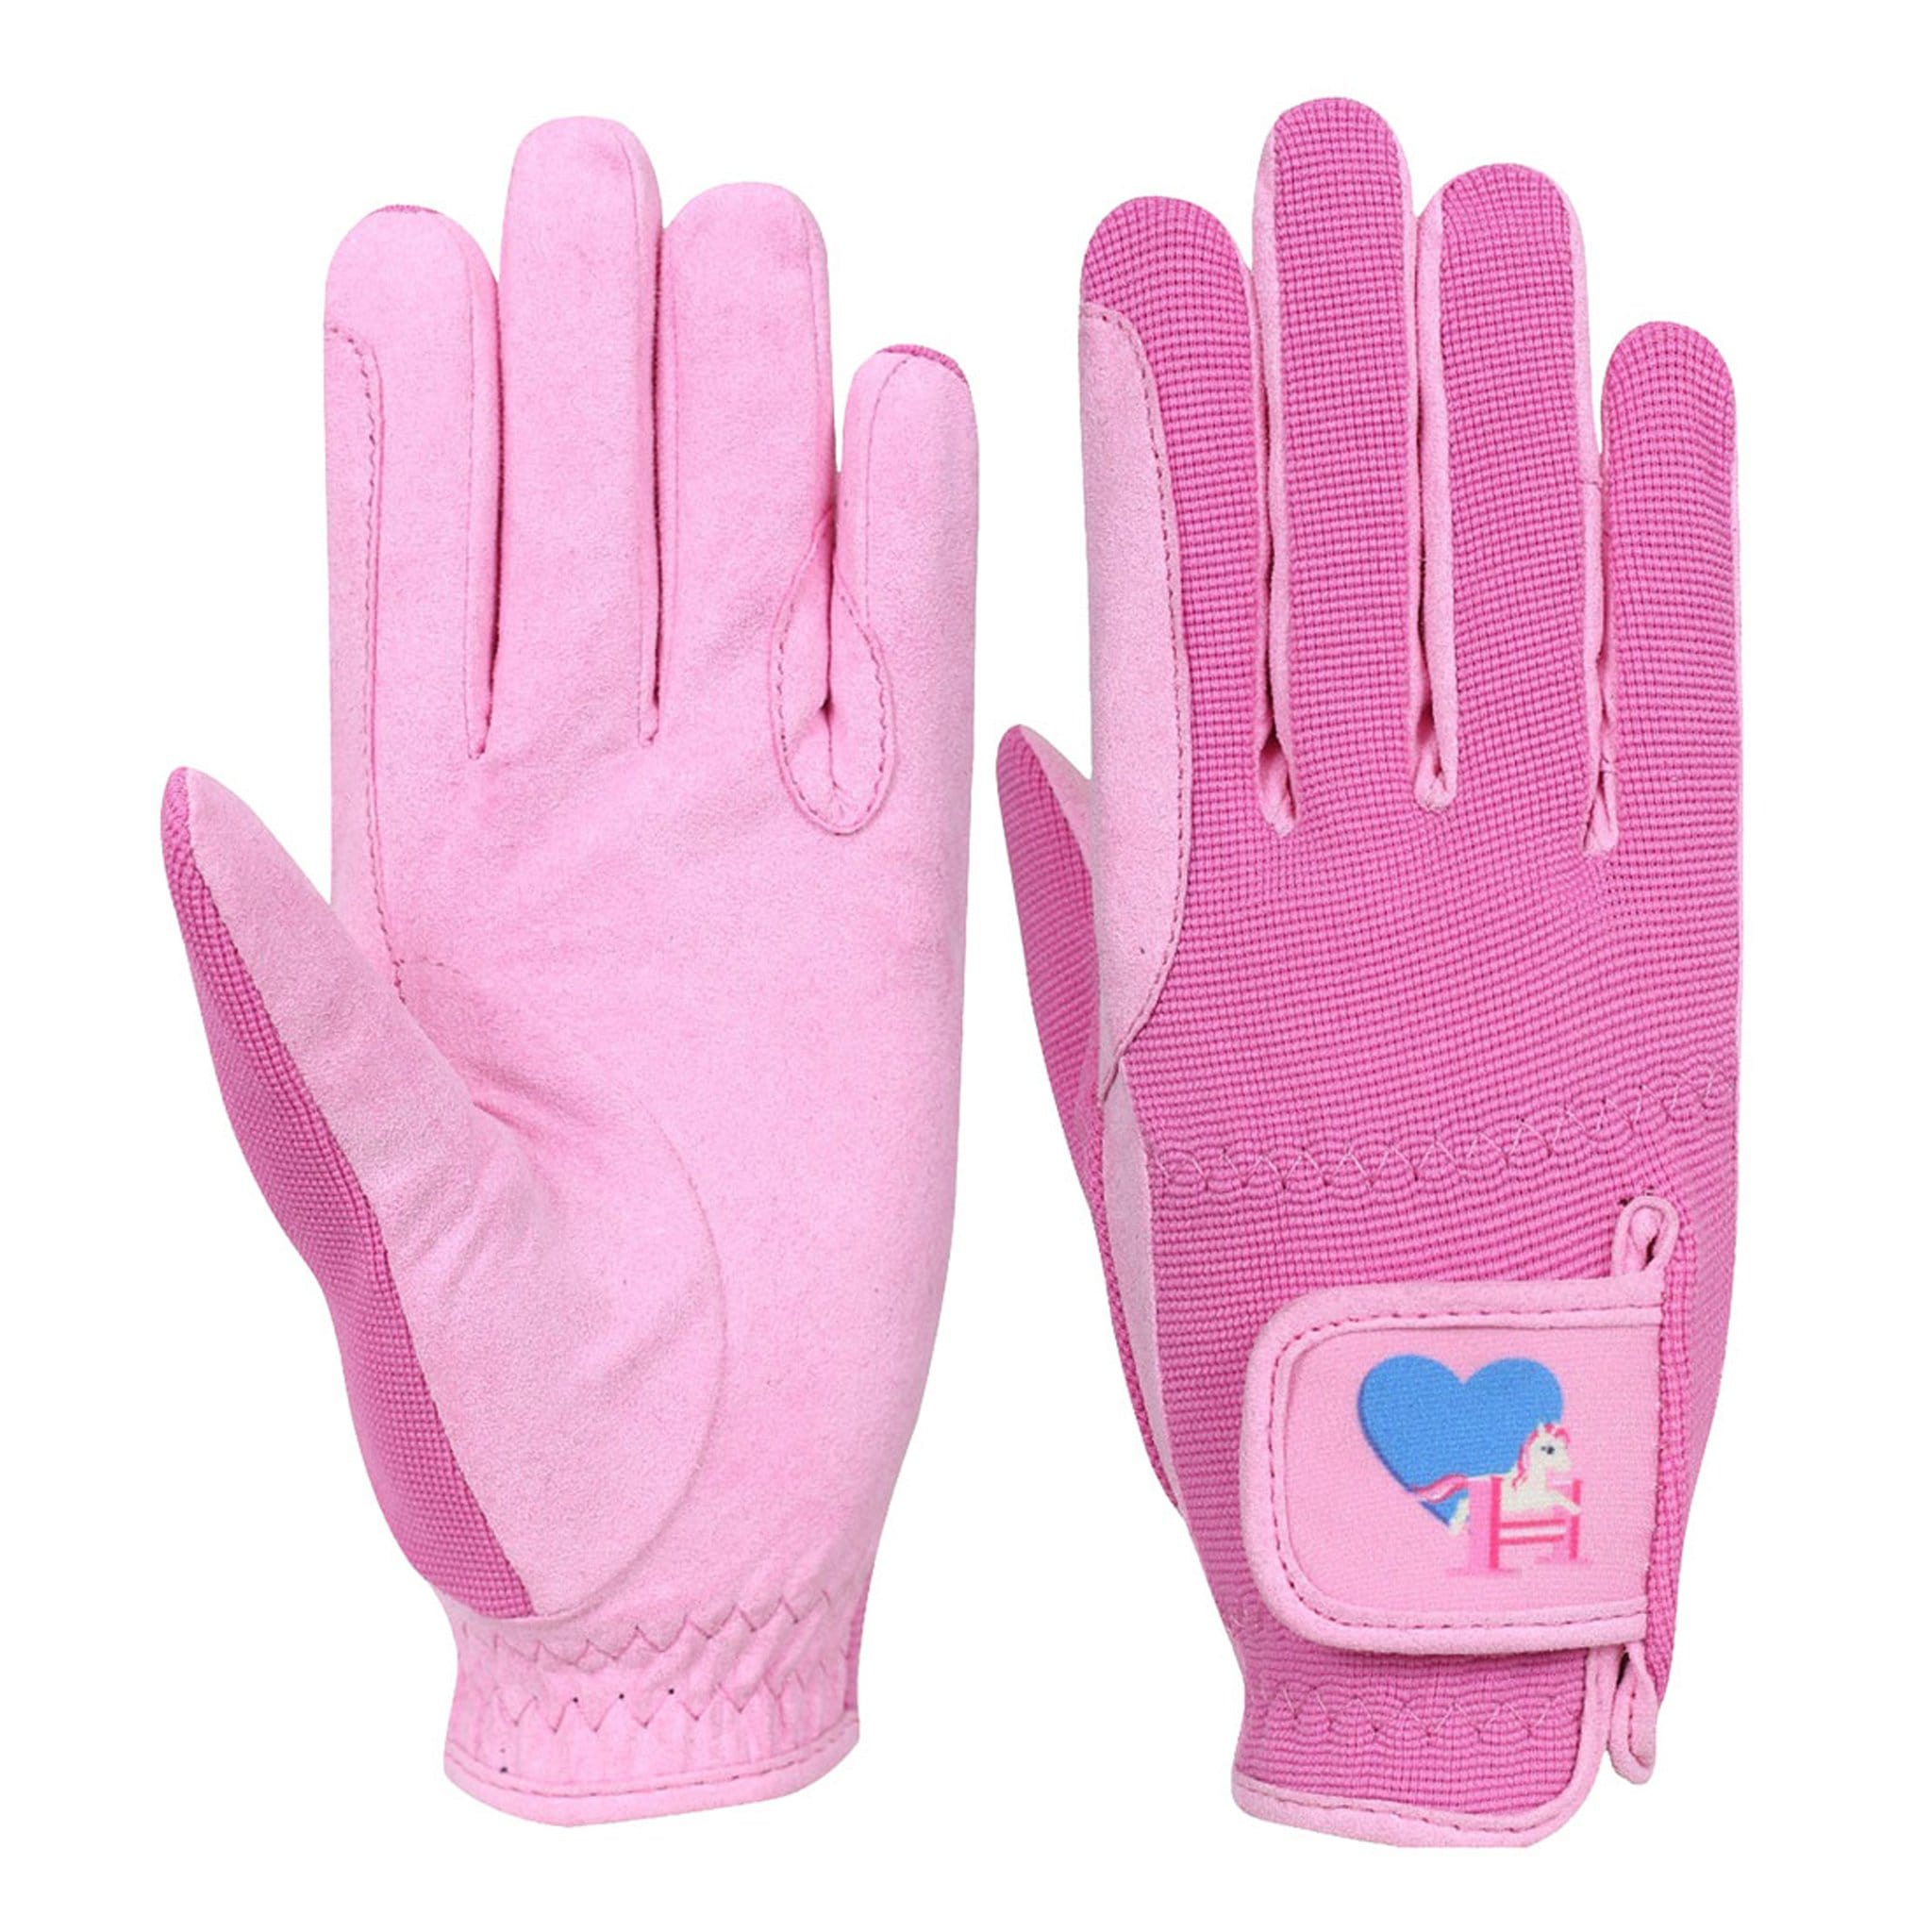 Hy Little Rider Little Show Pony Children's Riding Gloves 18456 Pink